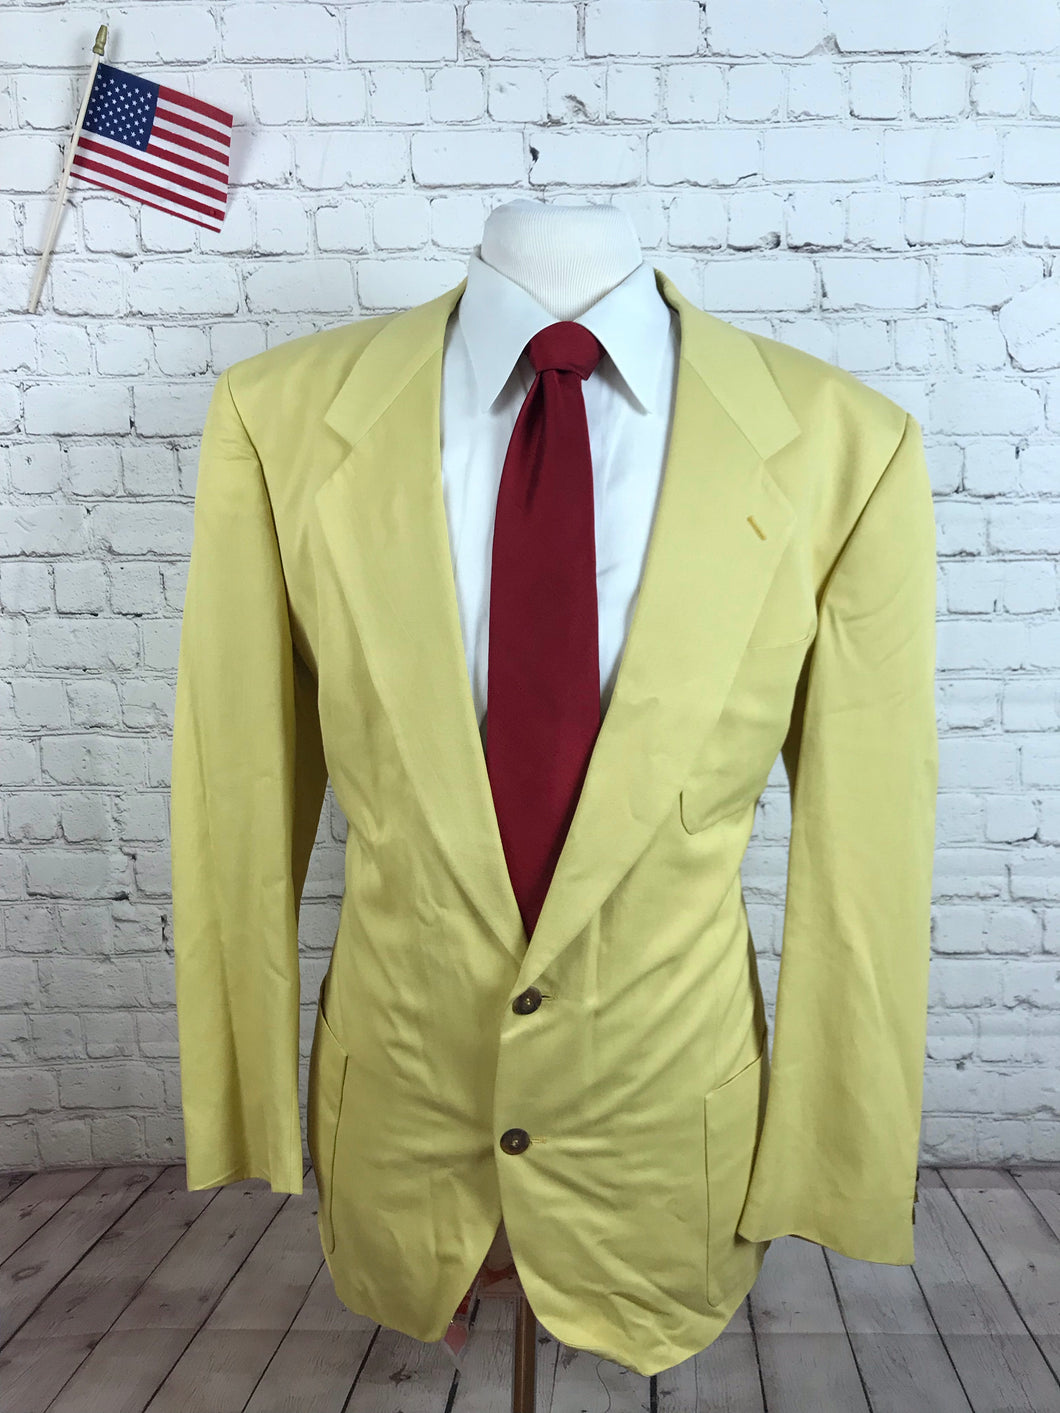 Custom Made Men's Yellow Blazer 46R $295 - SUIT CHARITY OUTLET